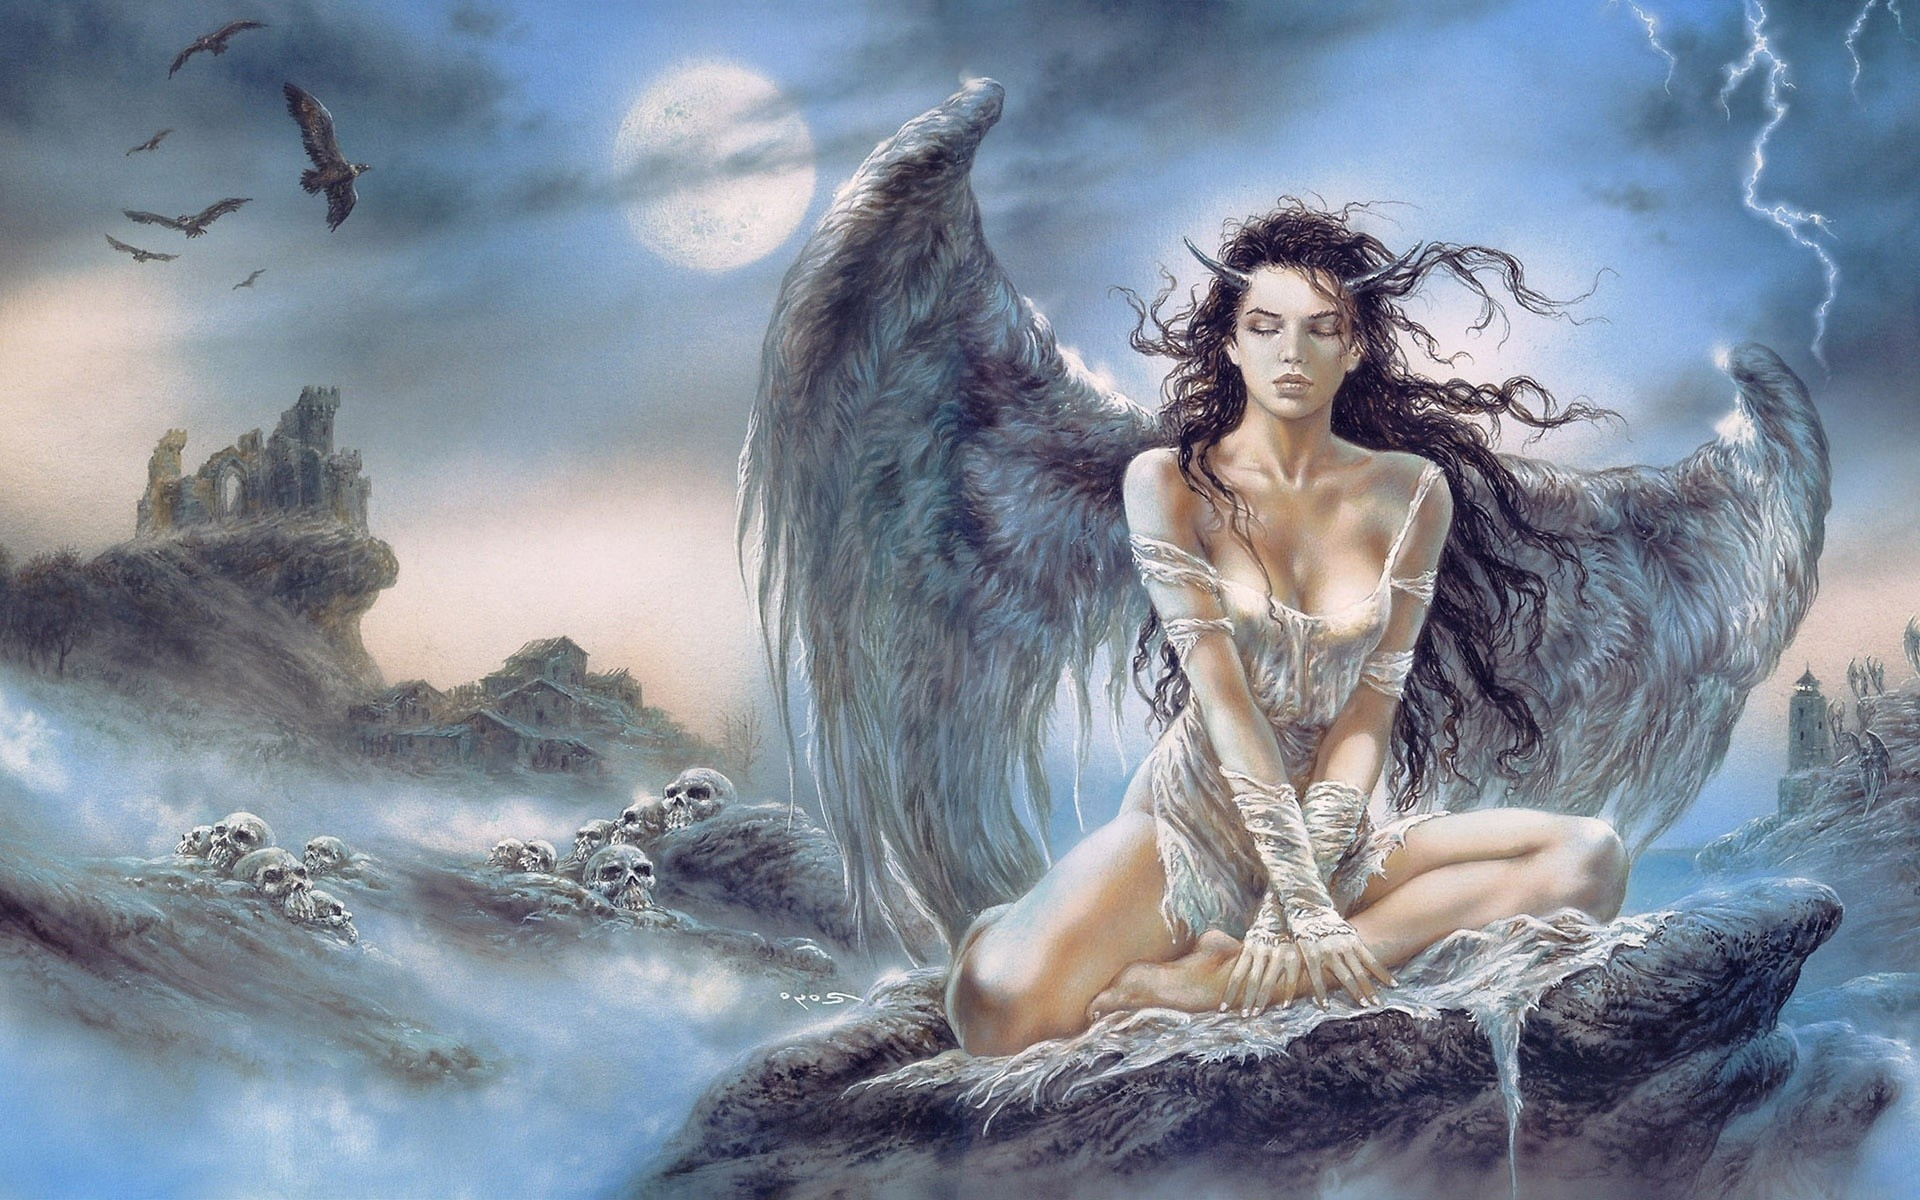 1920x1200 Luis Royo images Luis Royo Lady HD wallpaper and background photos